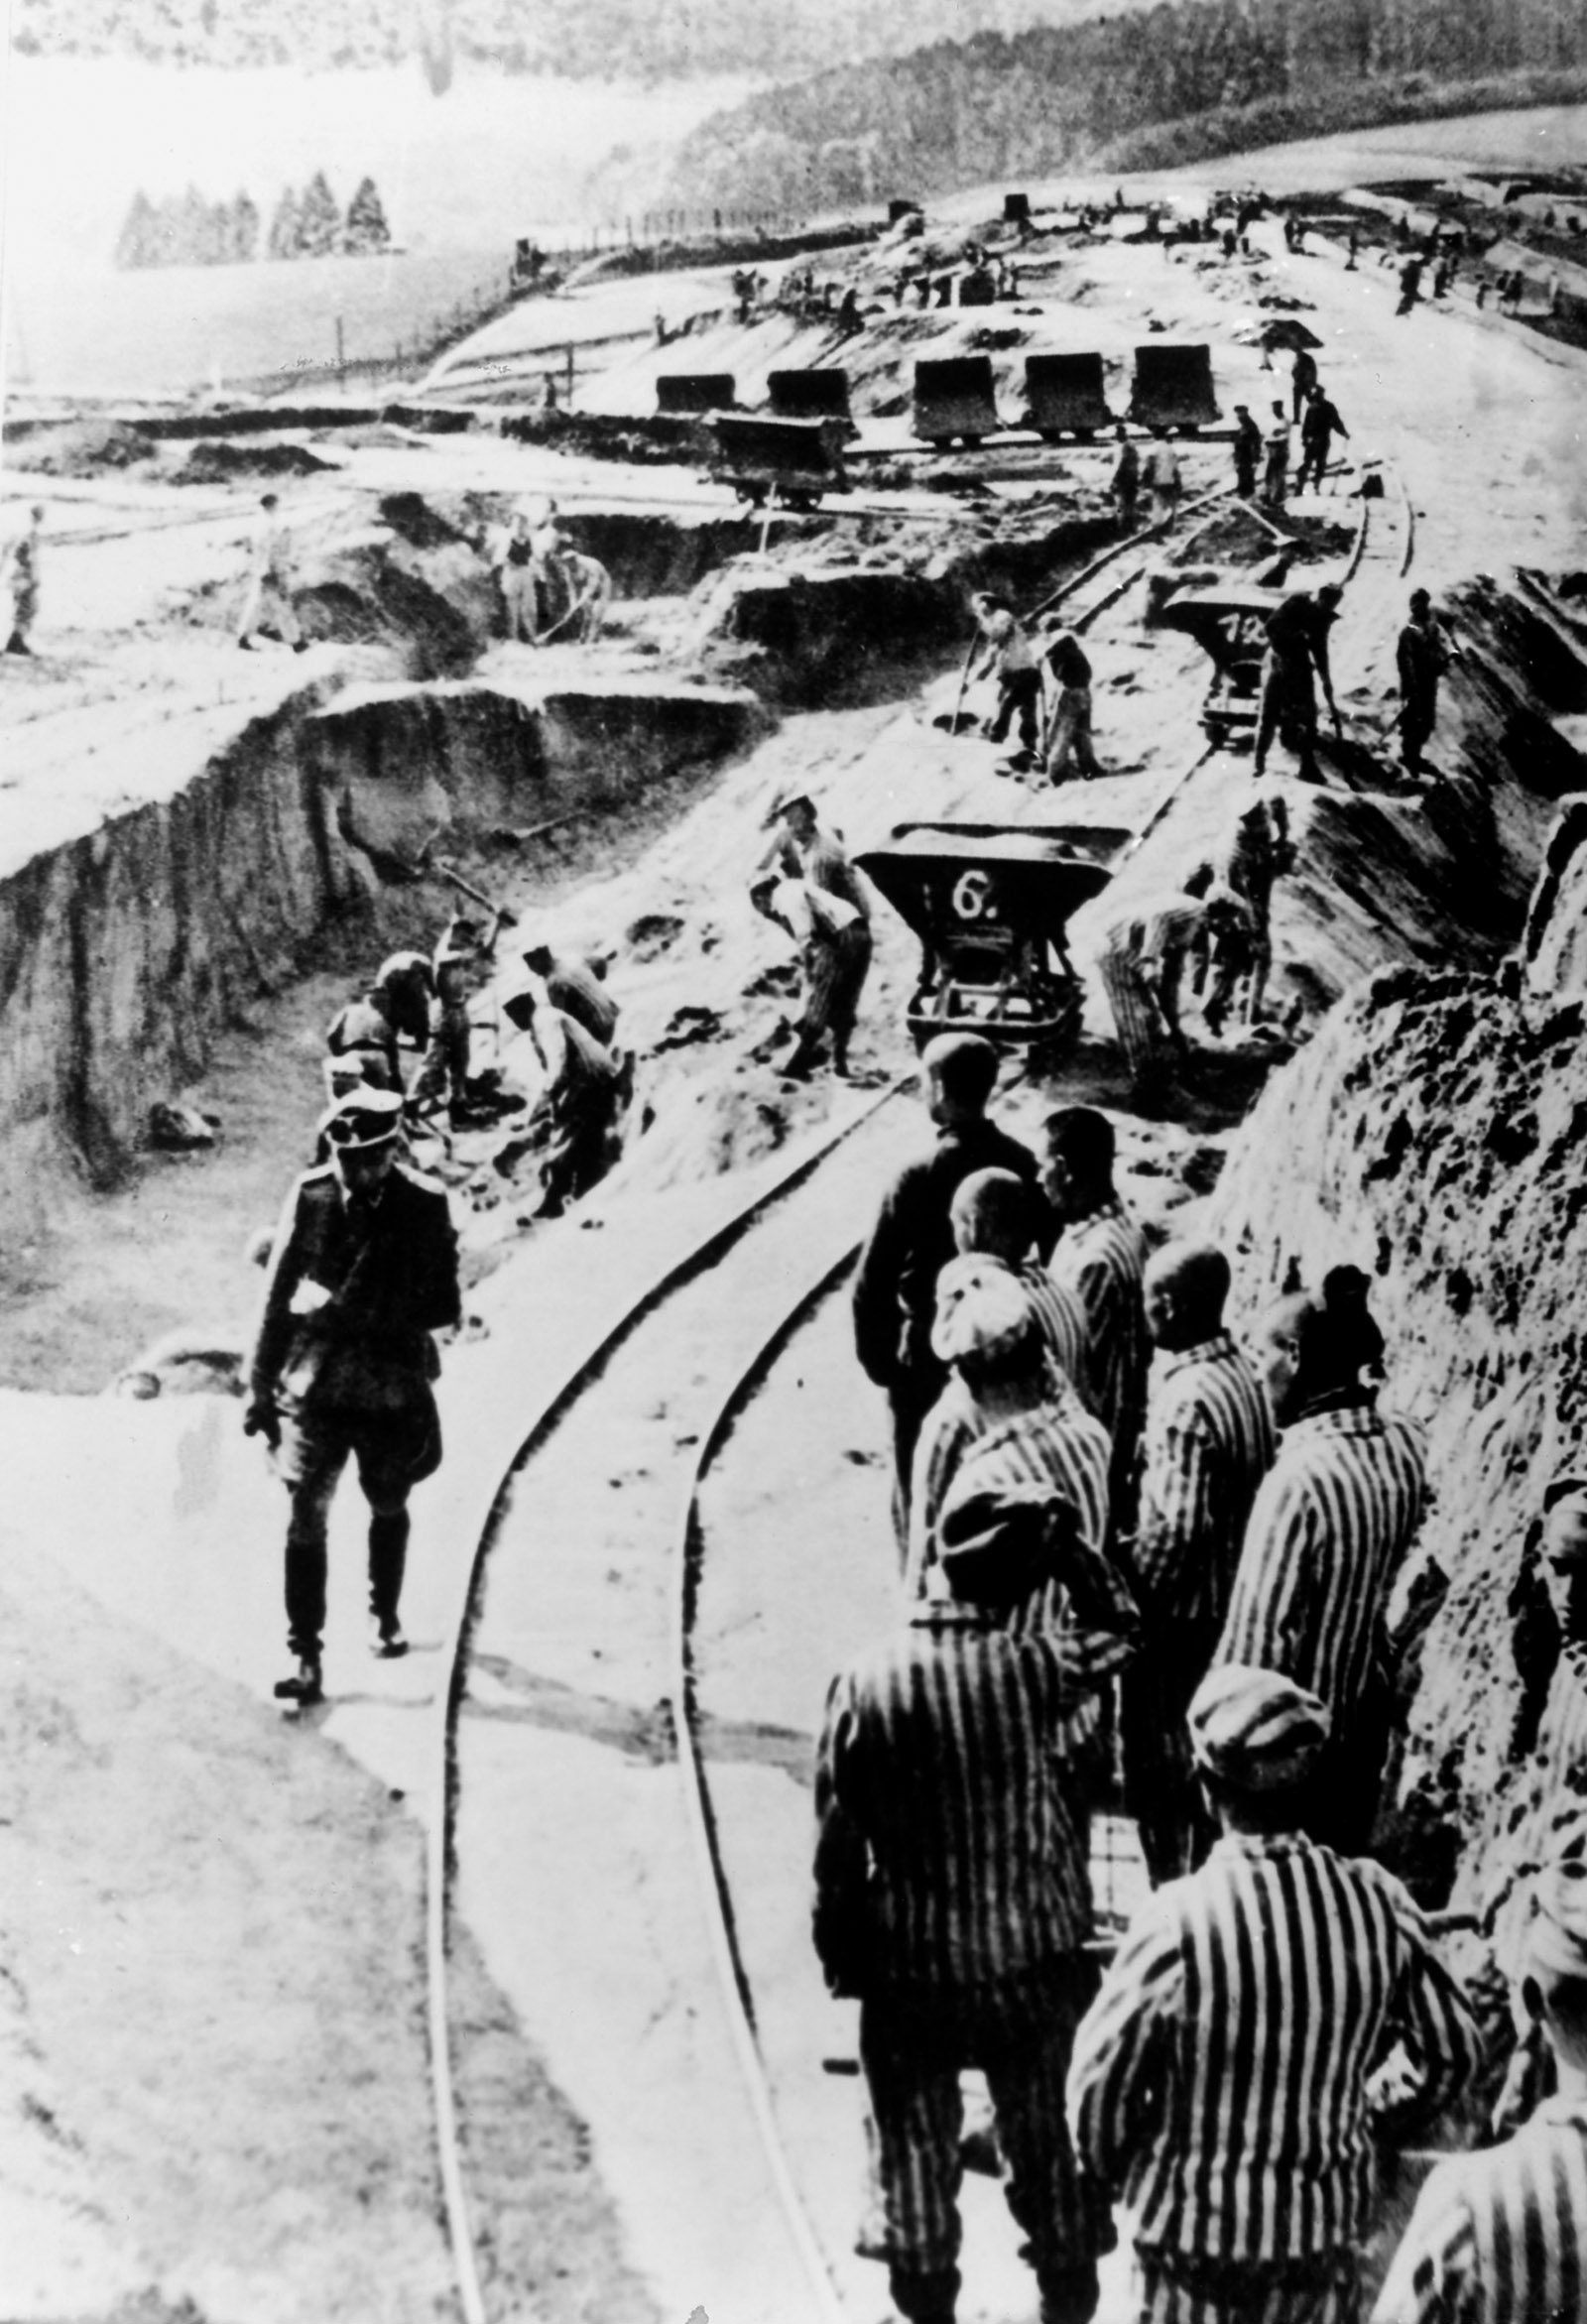 Prisoners doing forced labor at the Mauthausen concentration camp, Austria, early 1940s